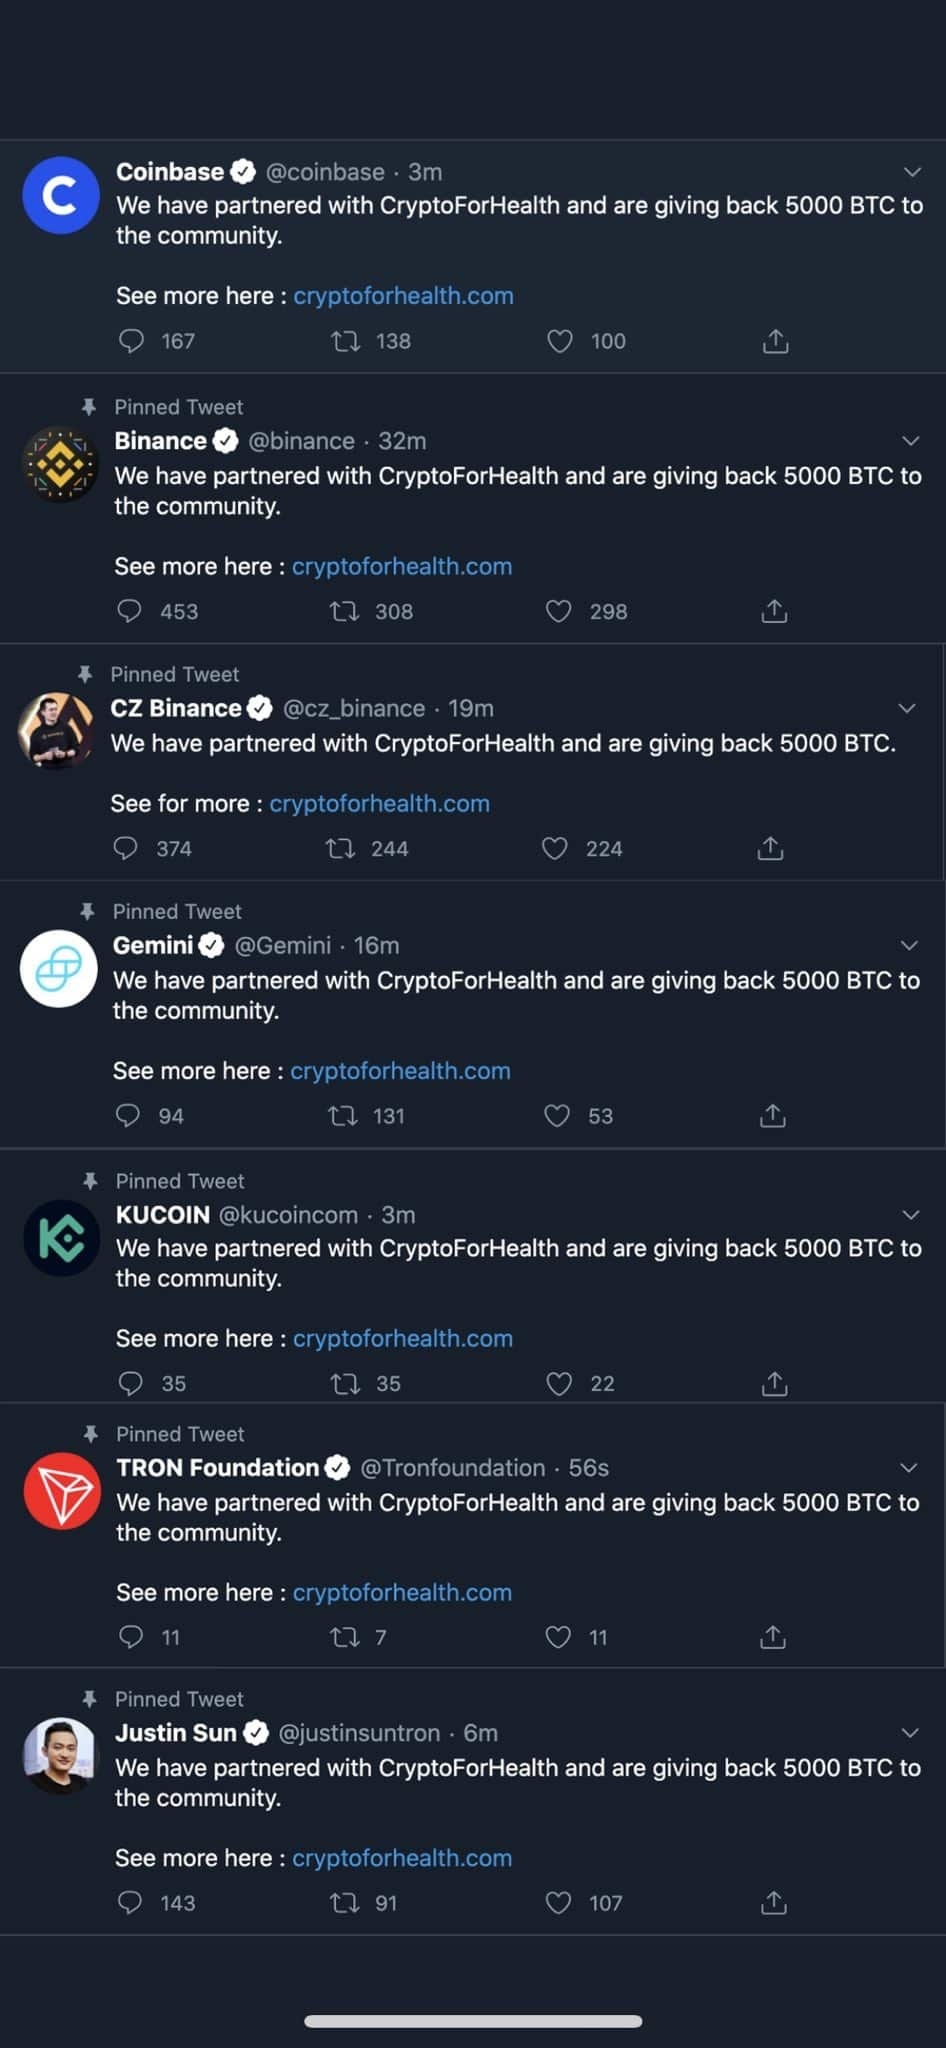 cas - Massive Bitcoin And Crypto Hack - Bad Actor Gained Access To A Twitter Account Tool